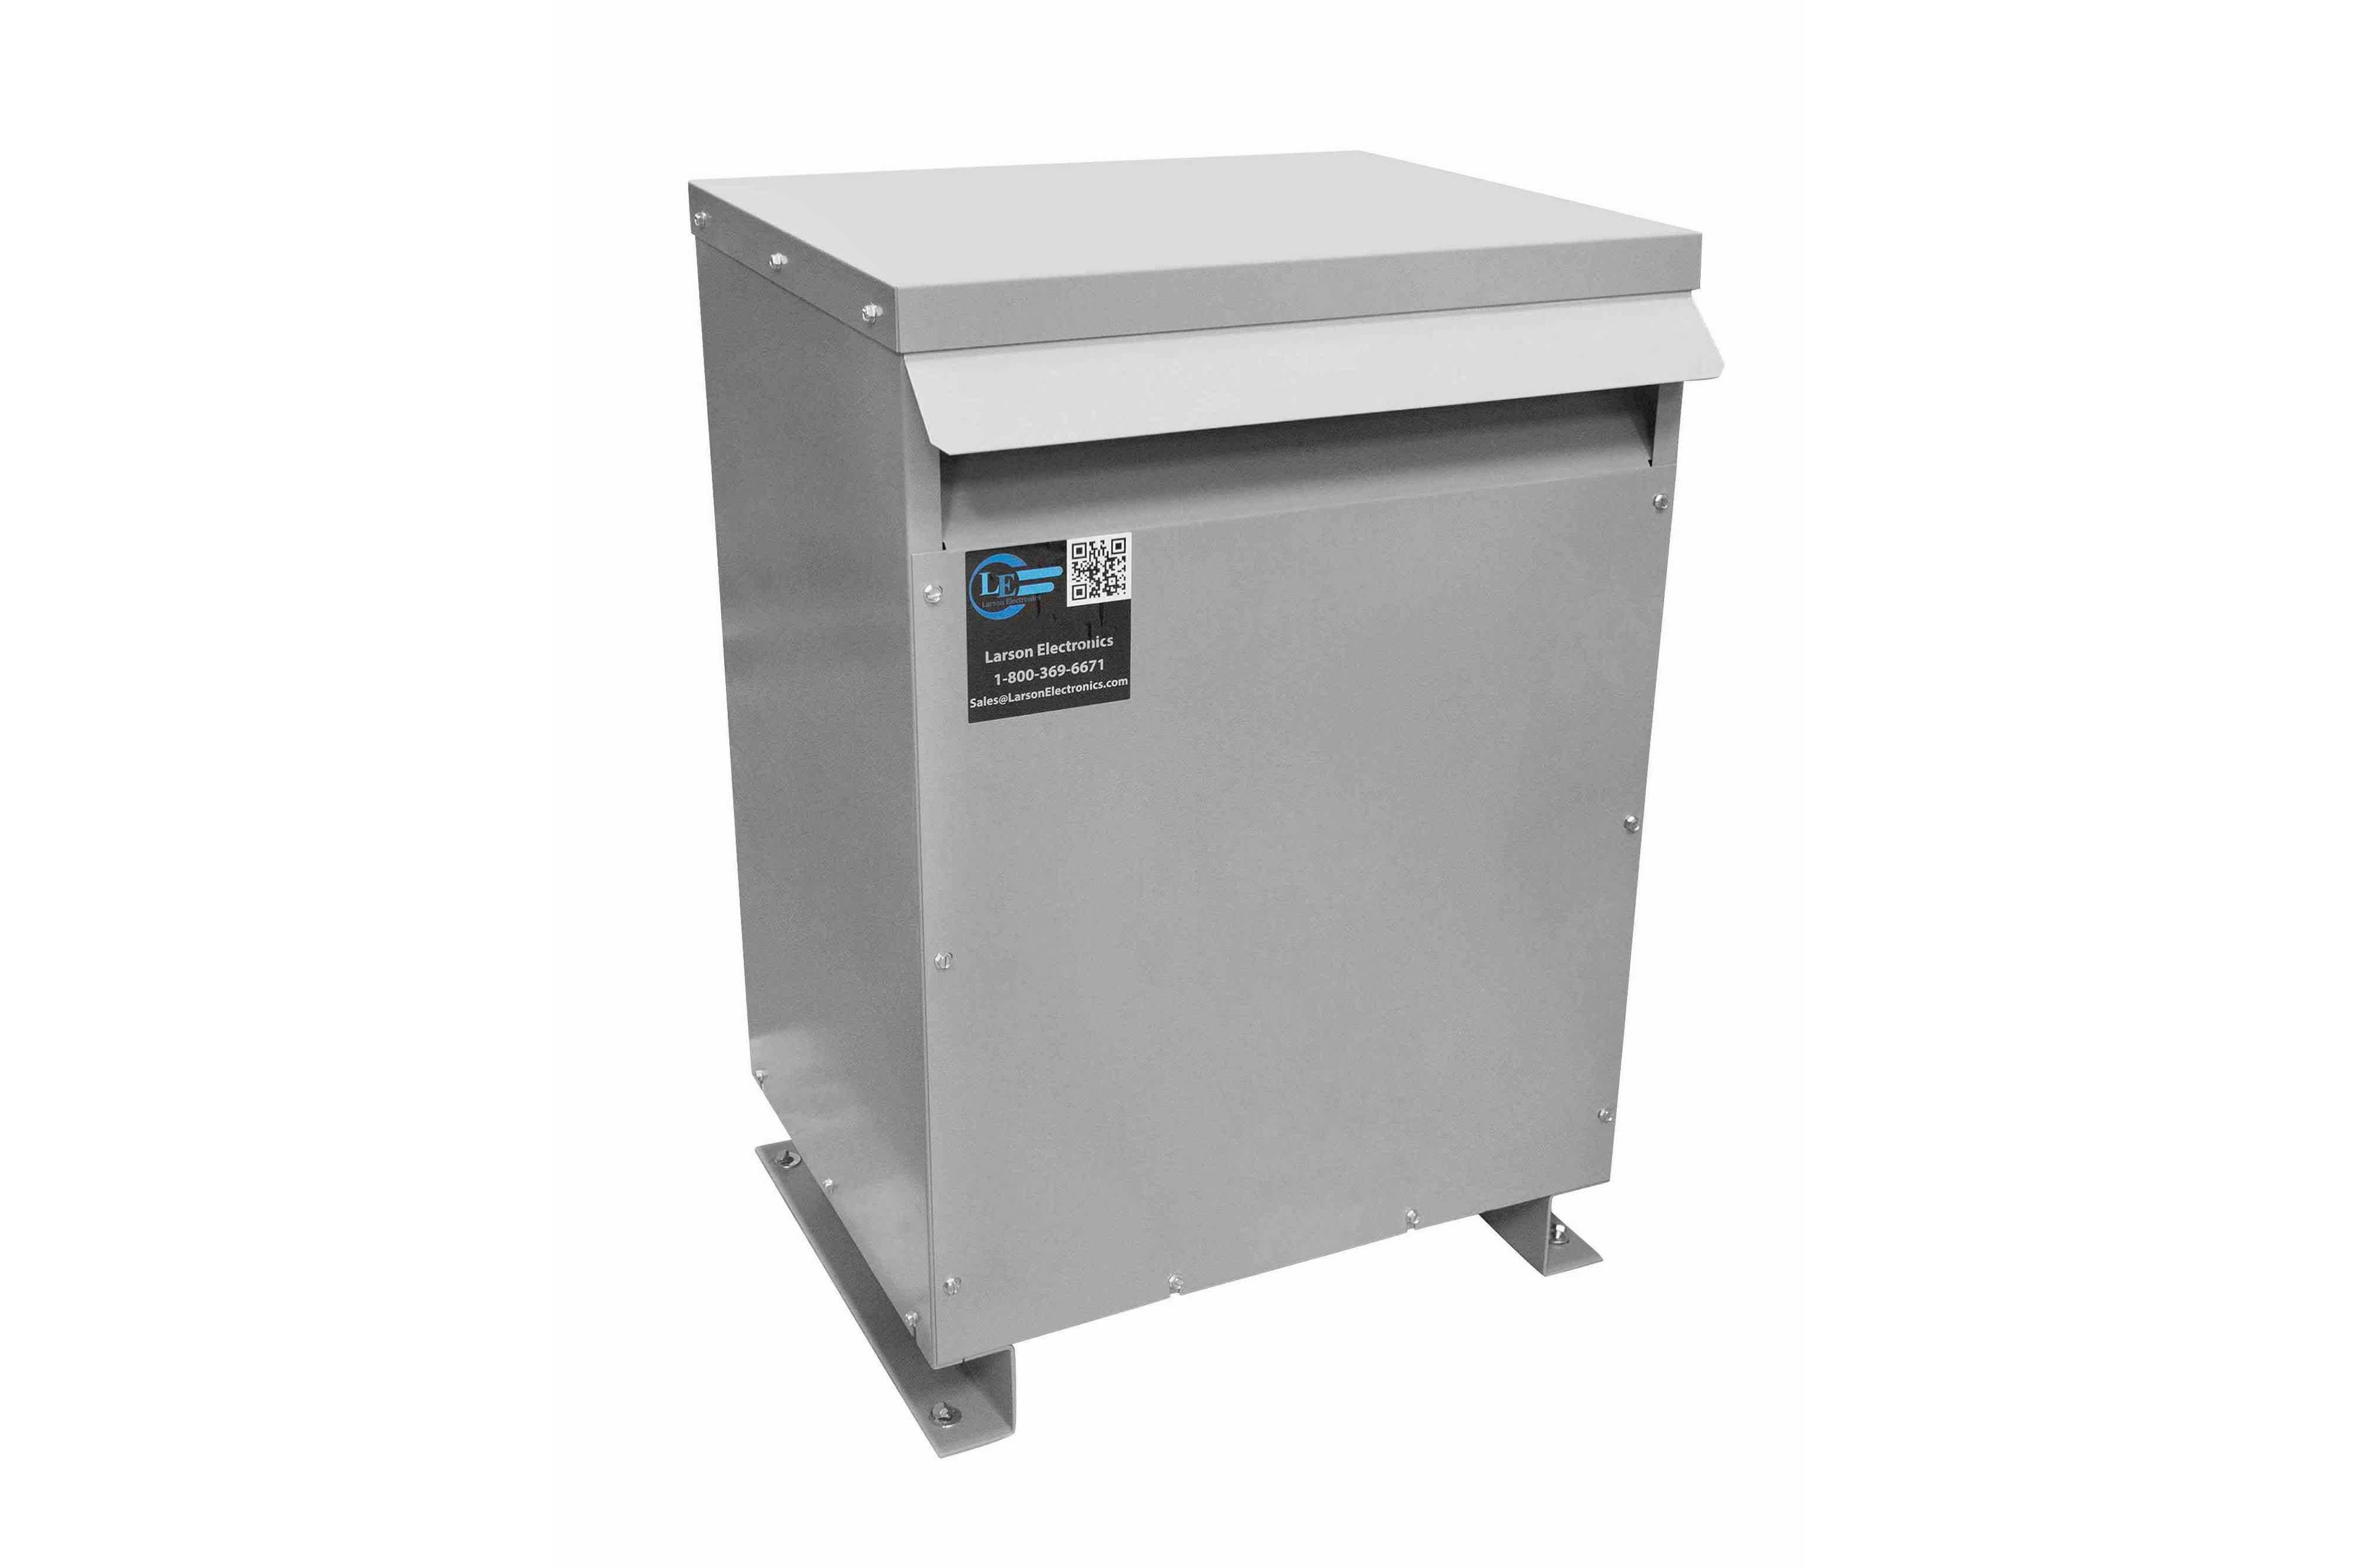 65 kVA 3PH Isolation Transformer, 240V Wye Primary, 208V Delta Secondary, N3R, Ventilated, 60 Hz